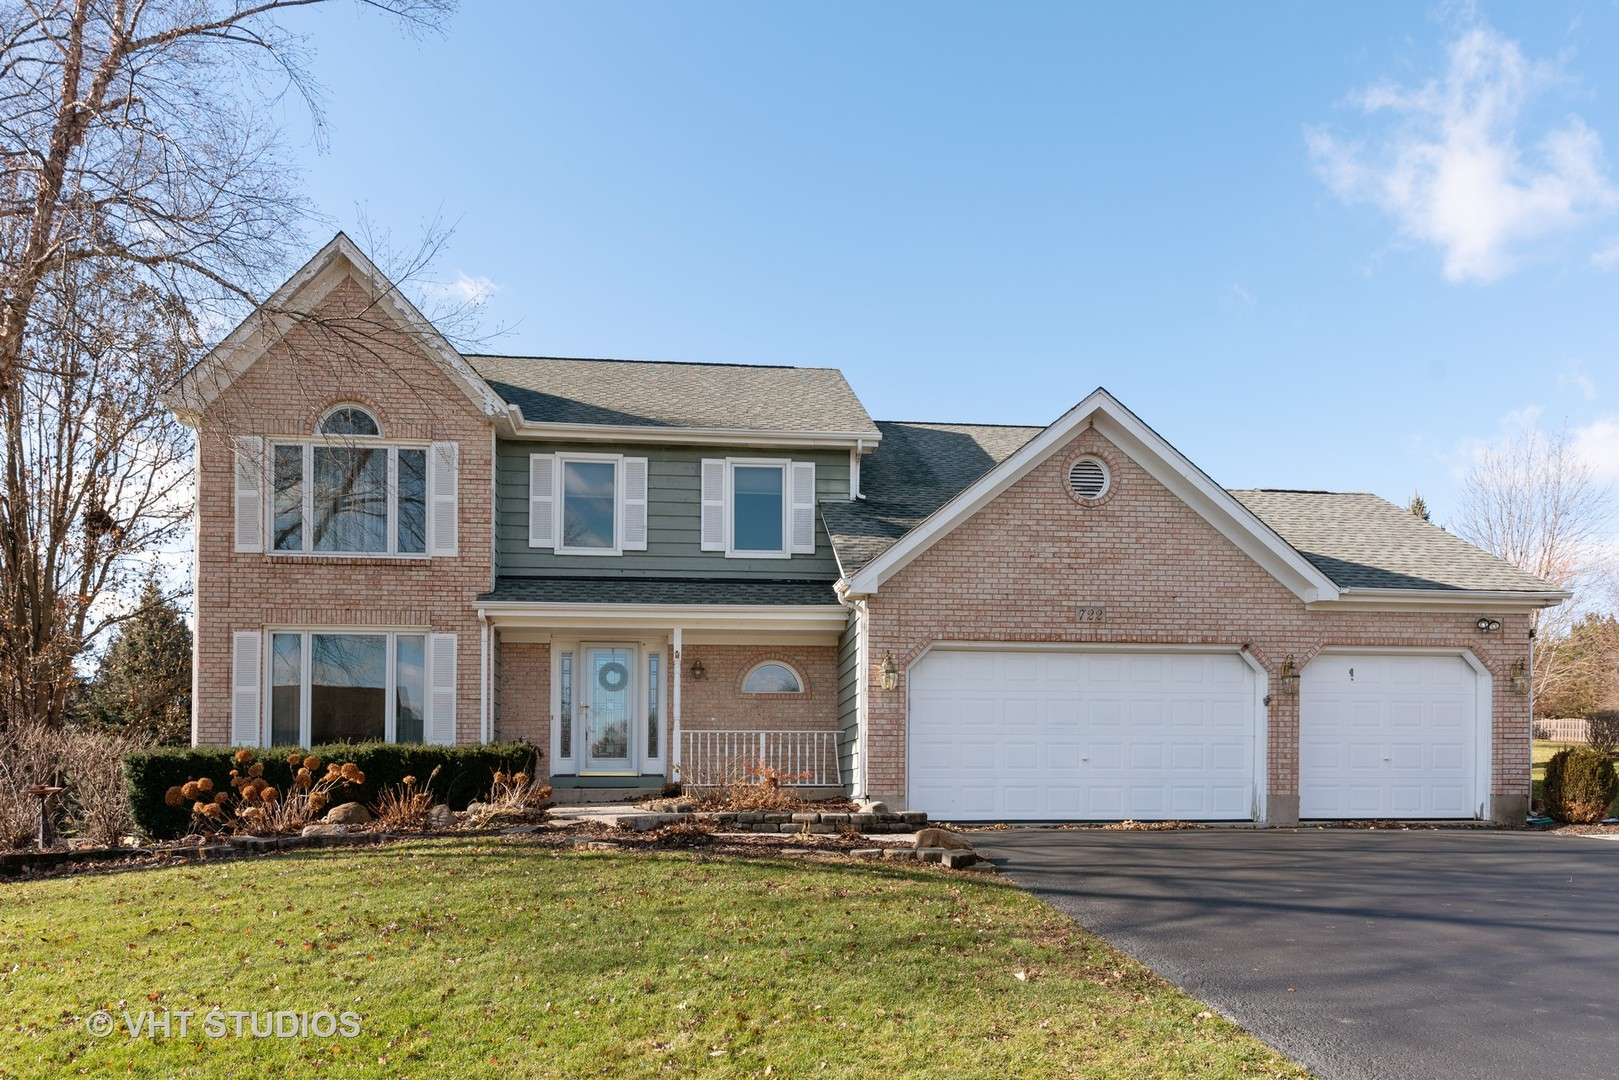 Photo for 722 Greens View Drive, Algonquin, IL 60102 (MLS # 10582680)